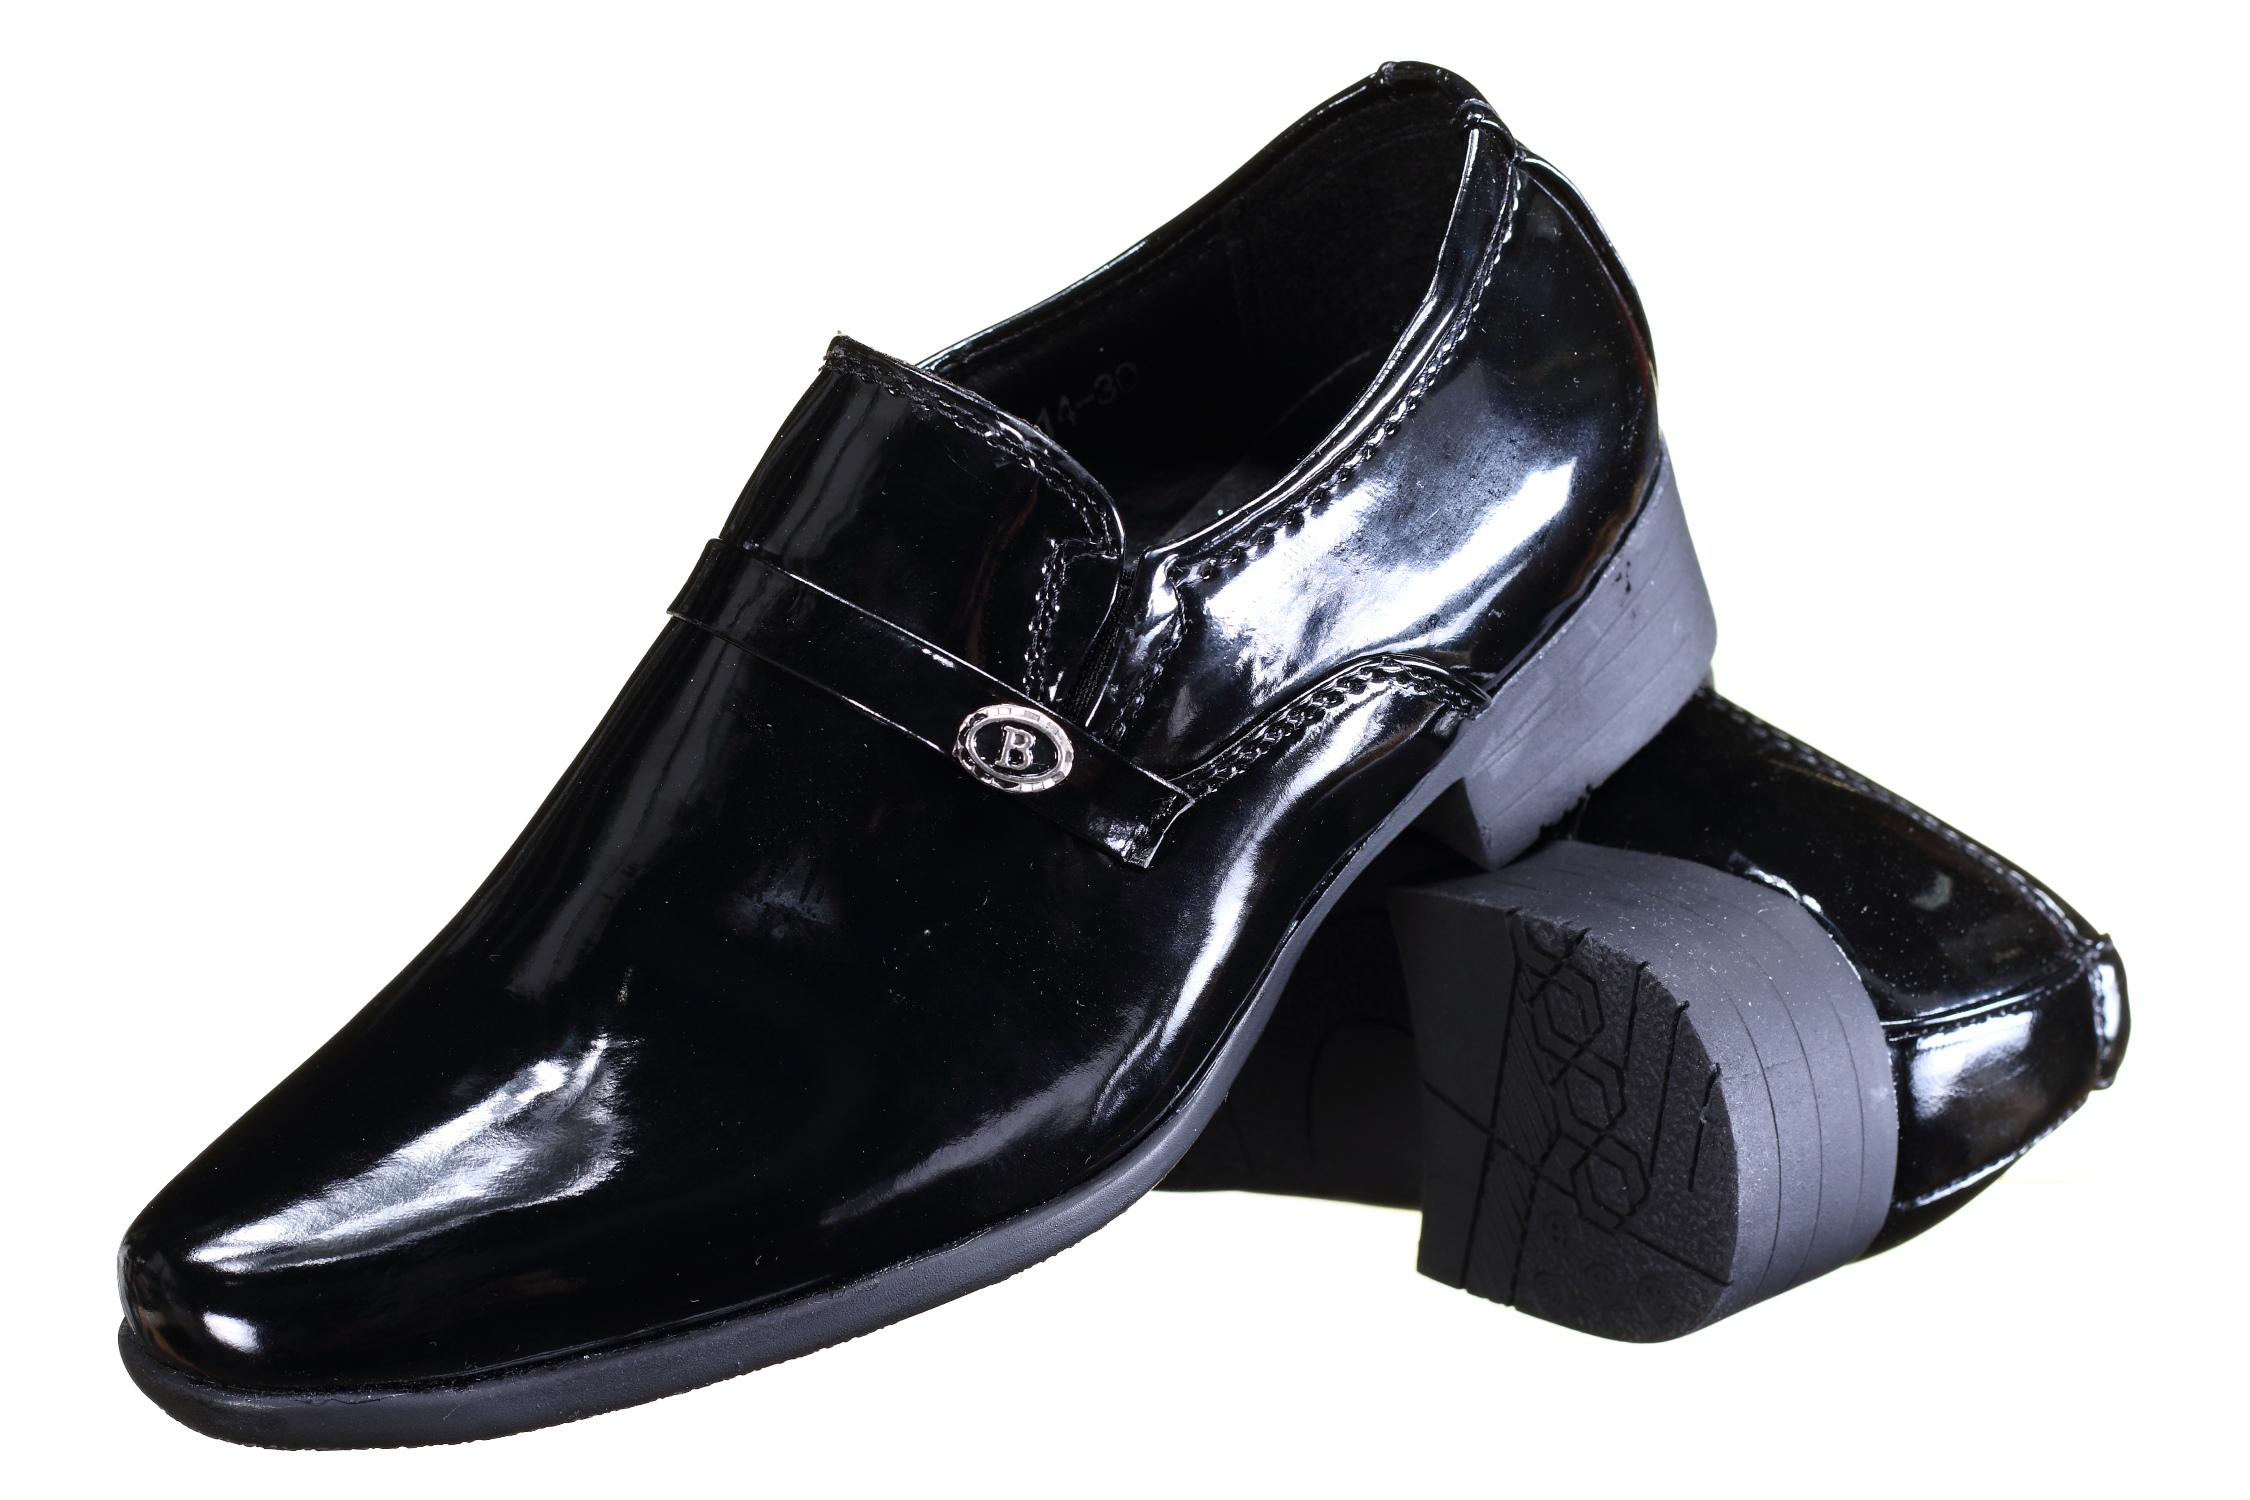 http://www.leadermode.com/100398/ws-shoes-5014-noir.jpg